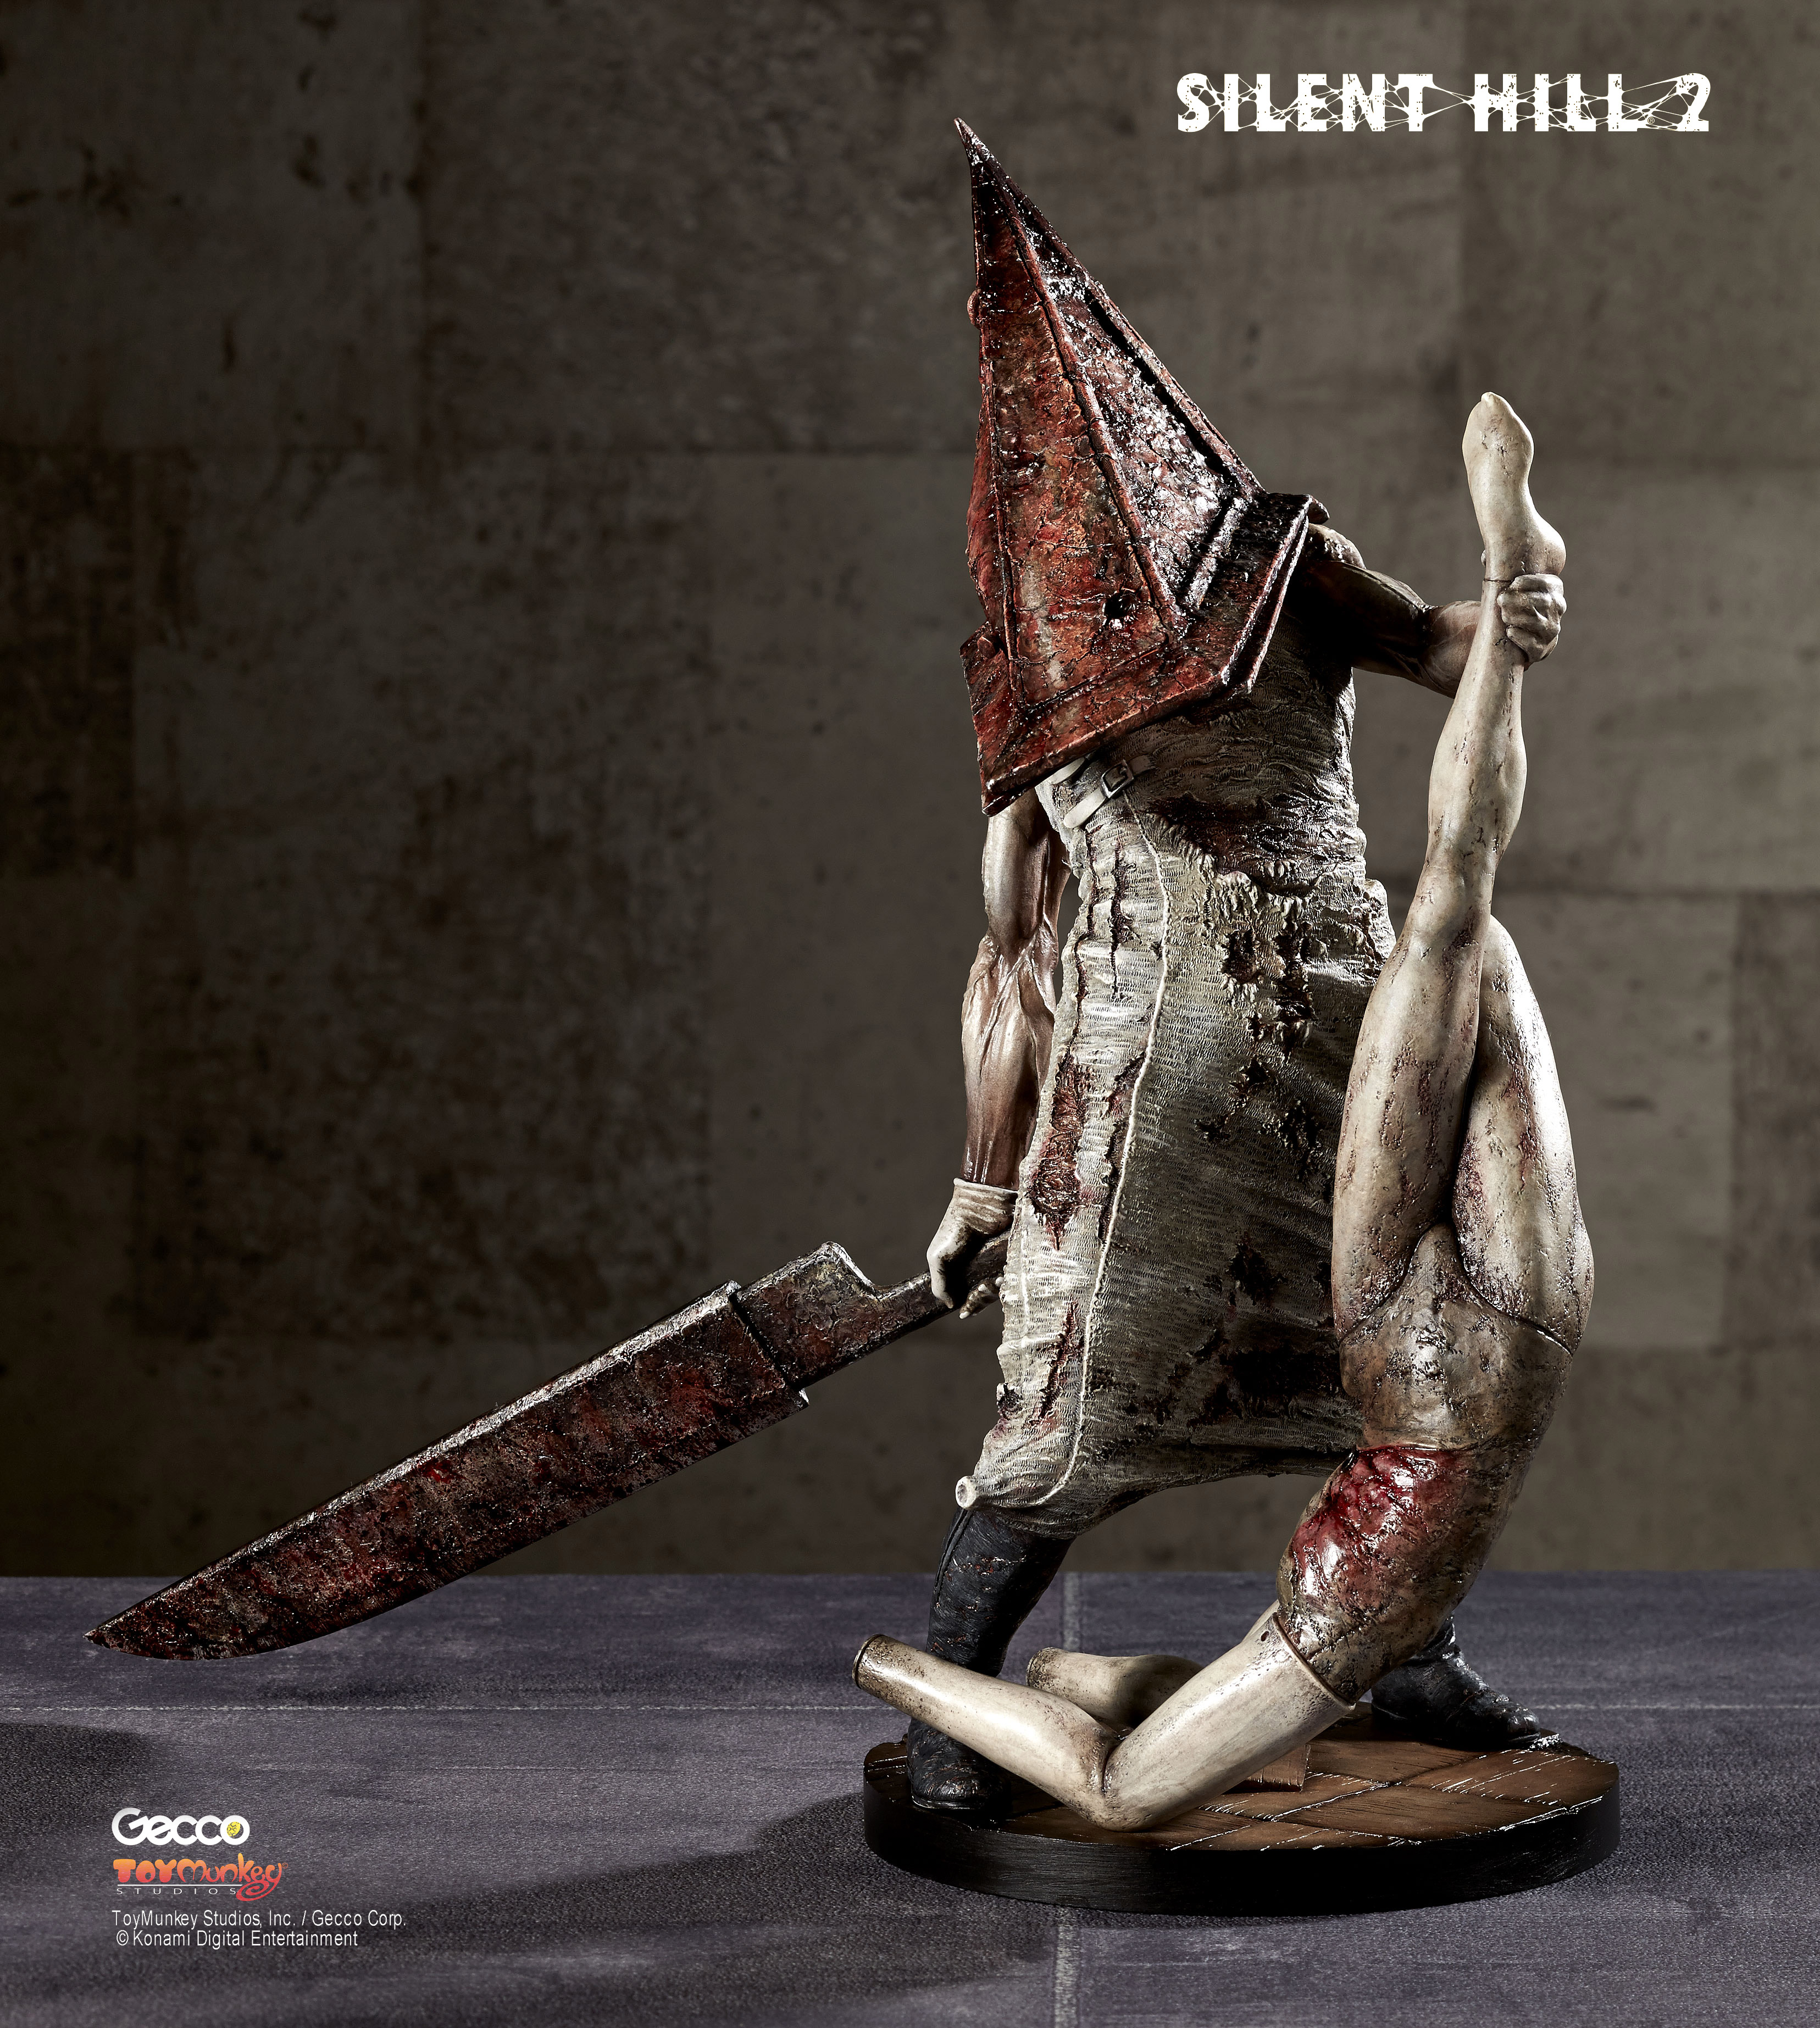 ToyMunkey and Gecco Unveil Horrifying New Silent Hill Figures at Comic-Con